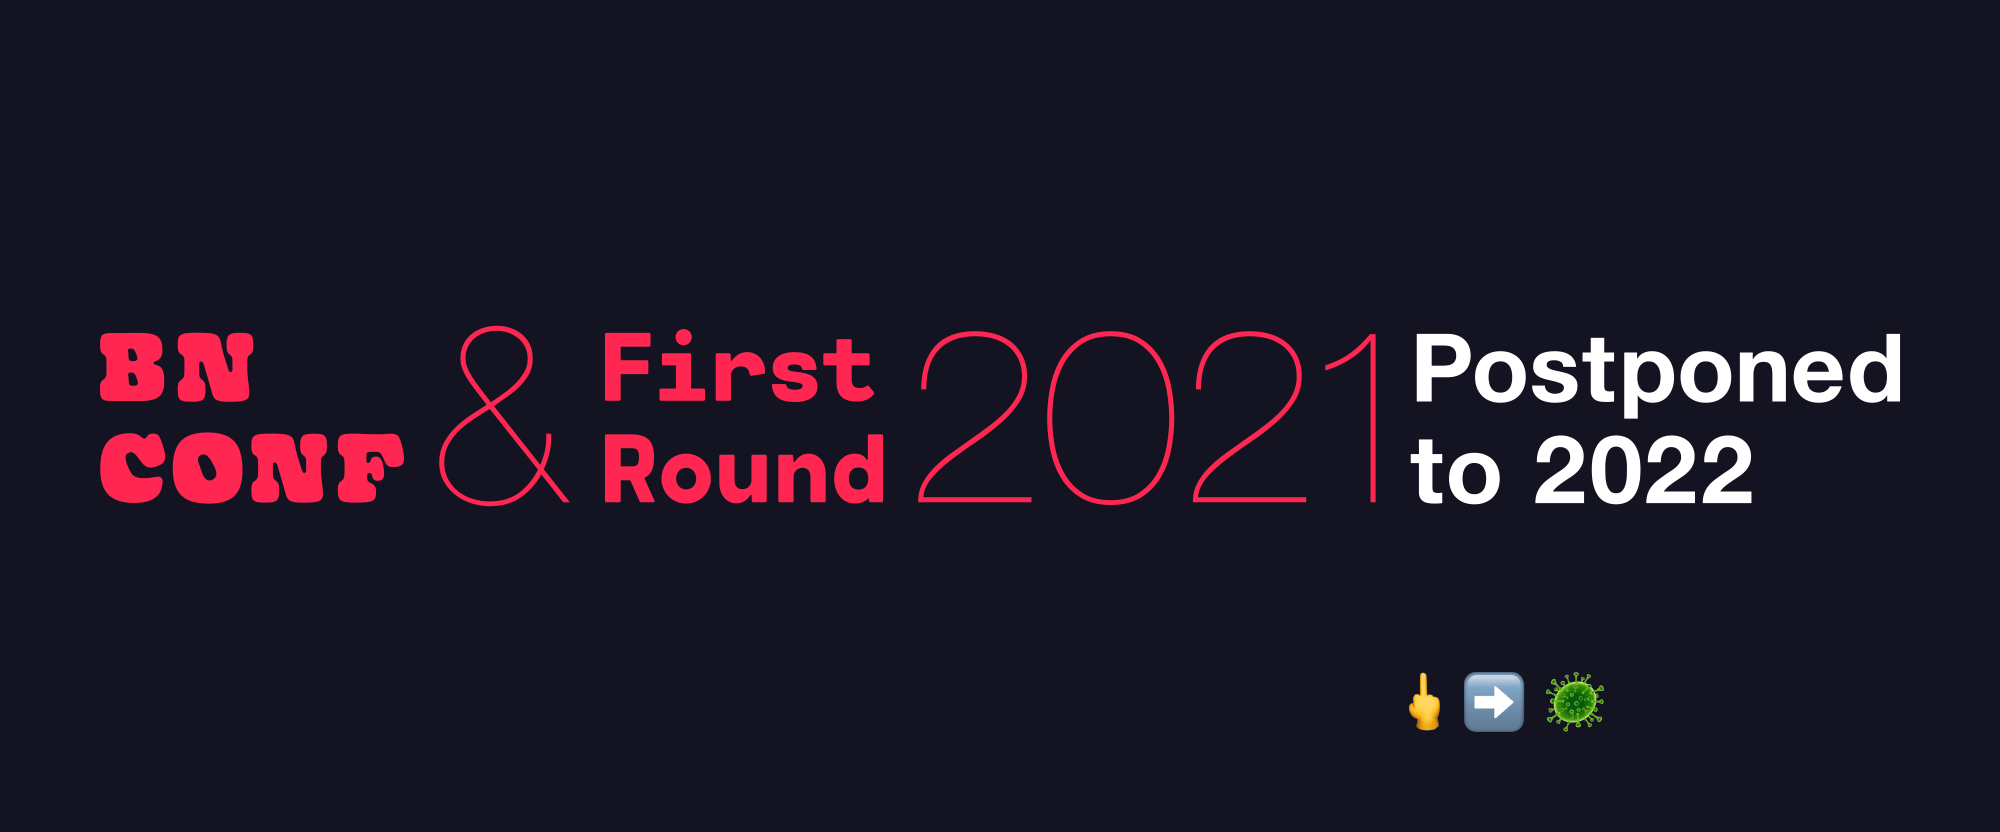 2021 BNConf and FR Postponed to 2022